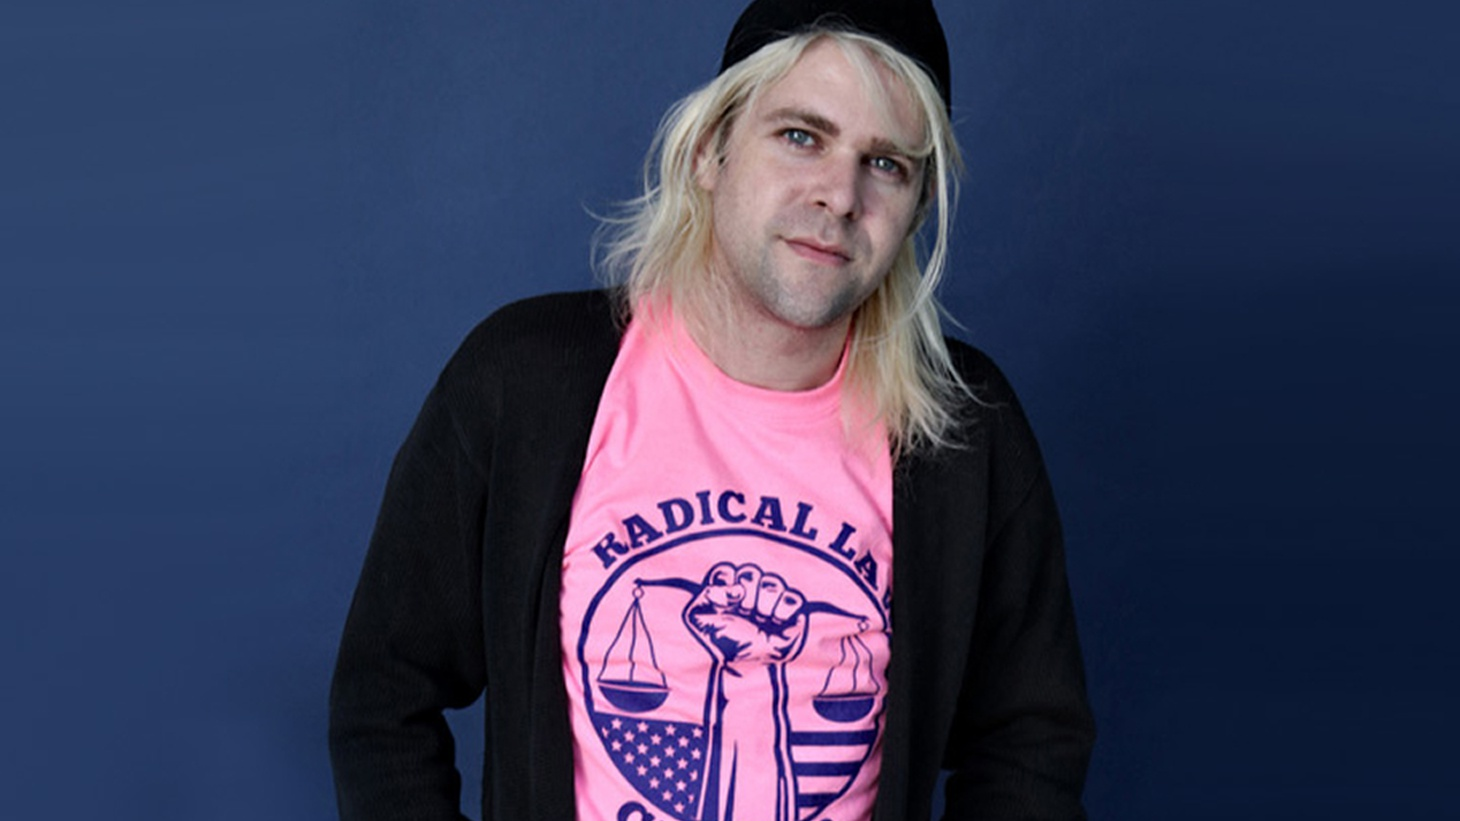 Ariel Pink is a purveyor of weird and intriguing pop, and he's a local favorite.